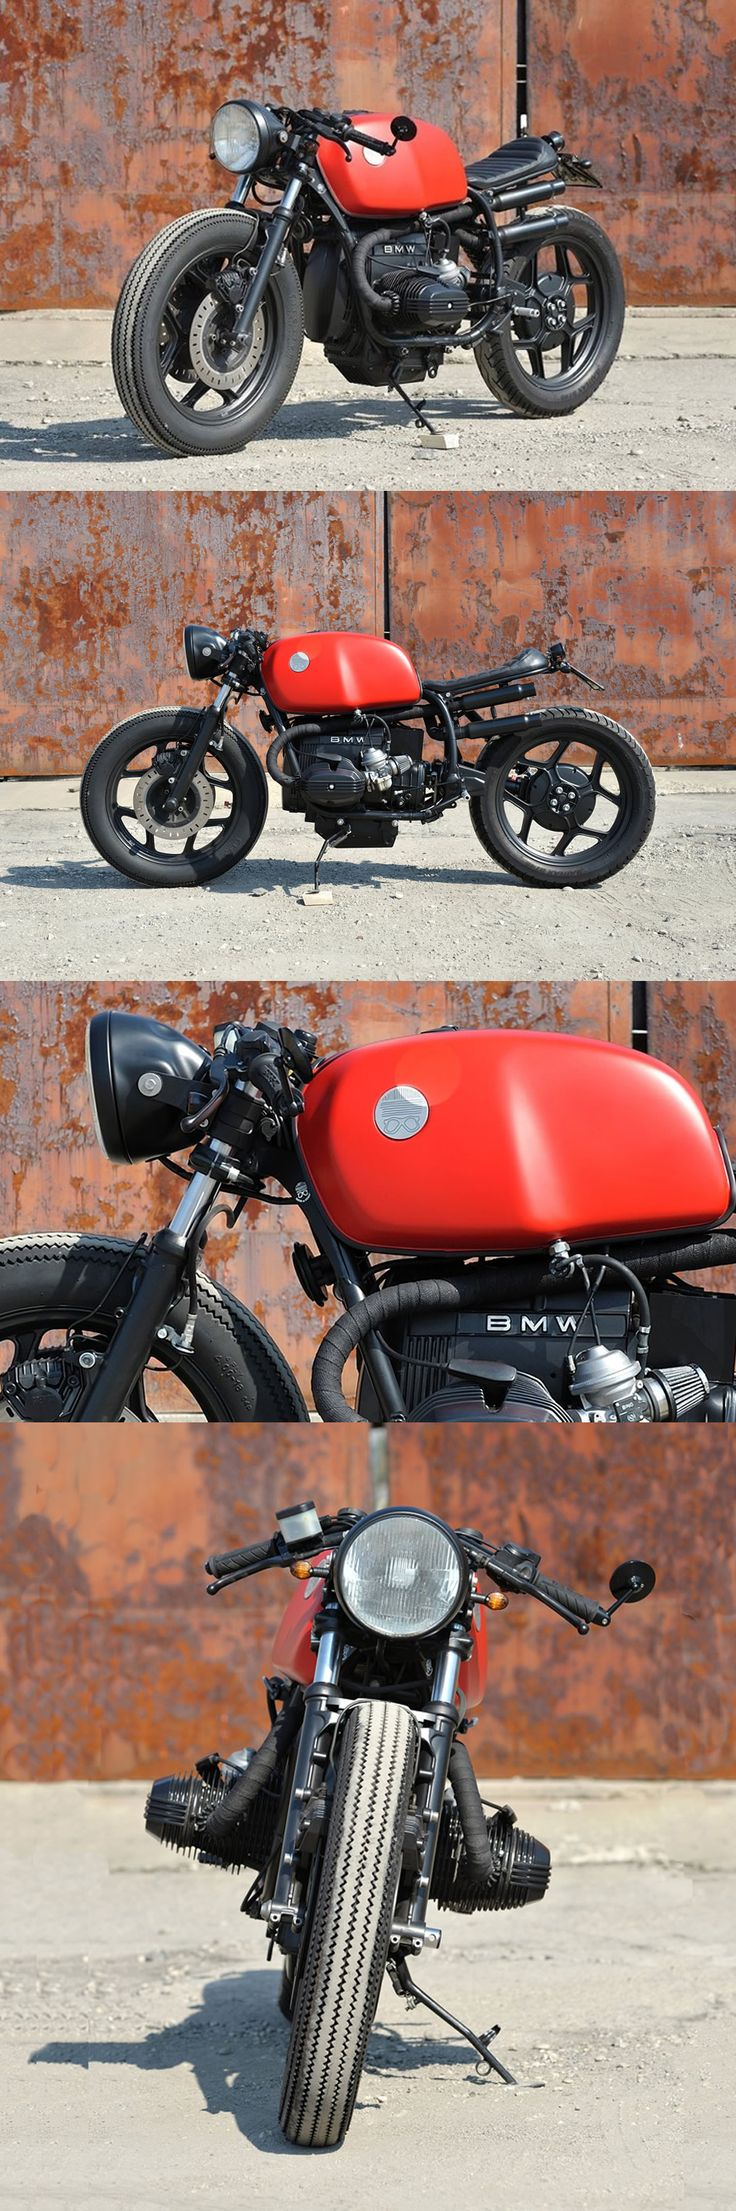 Red Iron - 1986 #BMW R65 by Moto Di Ferro